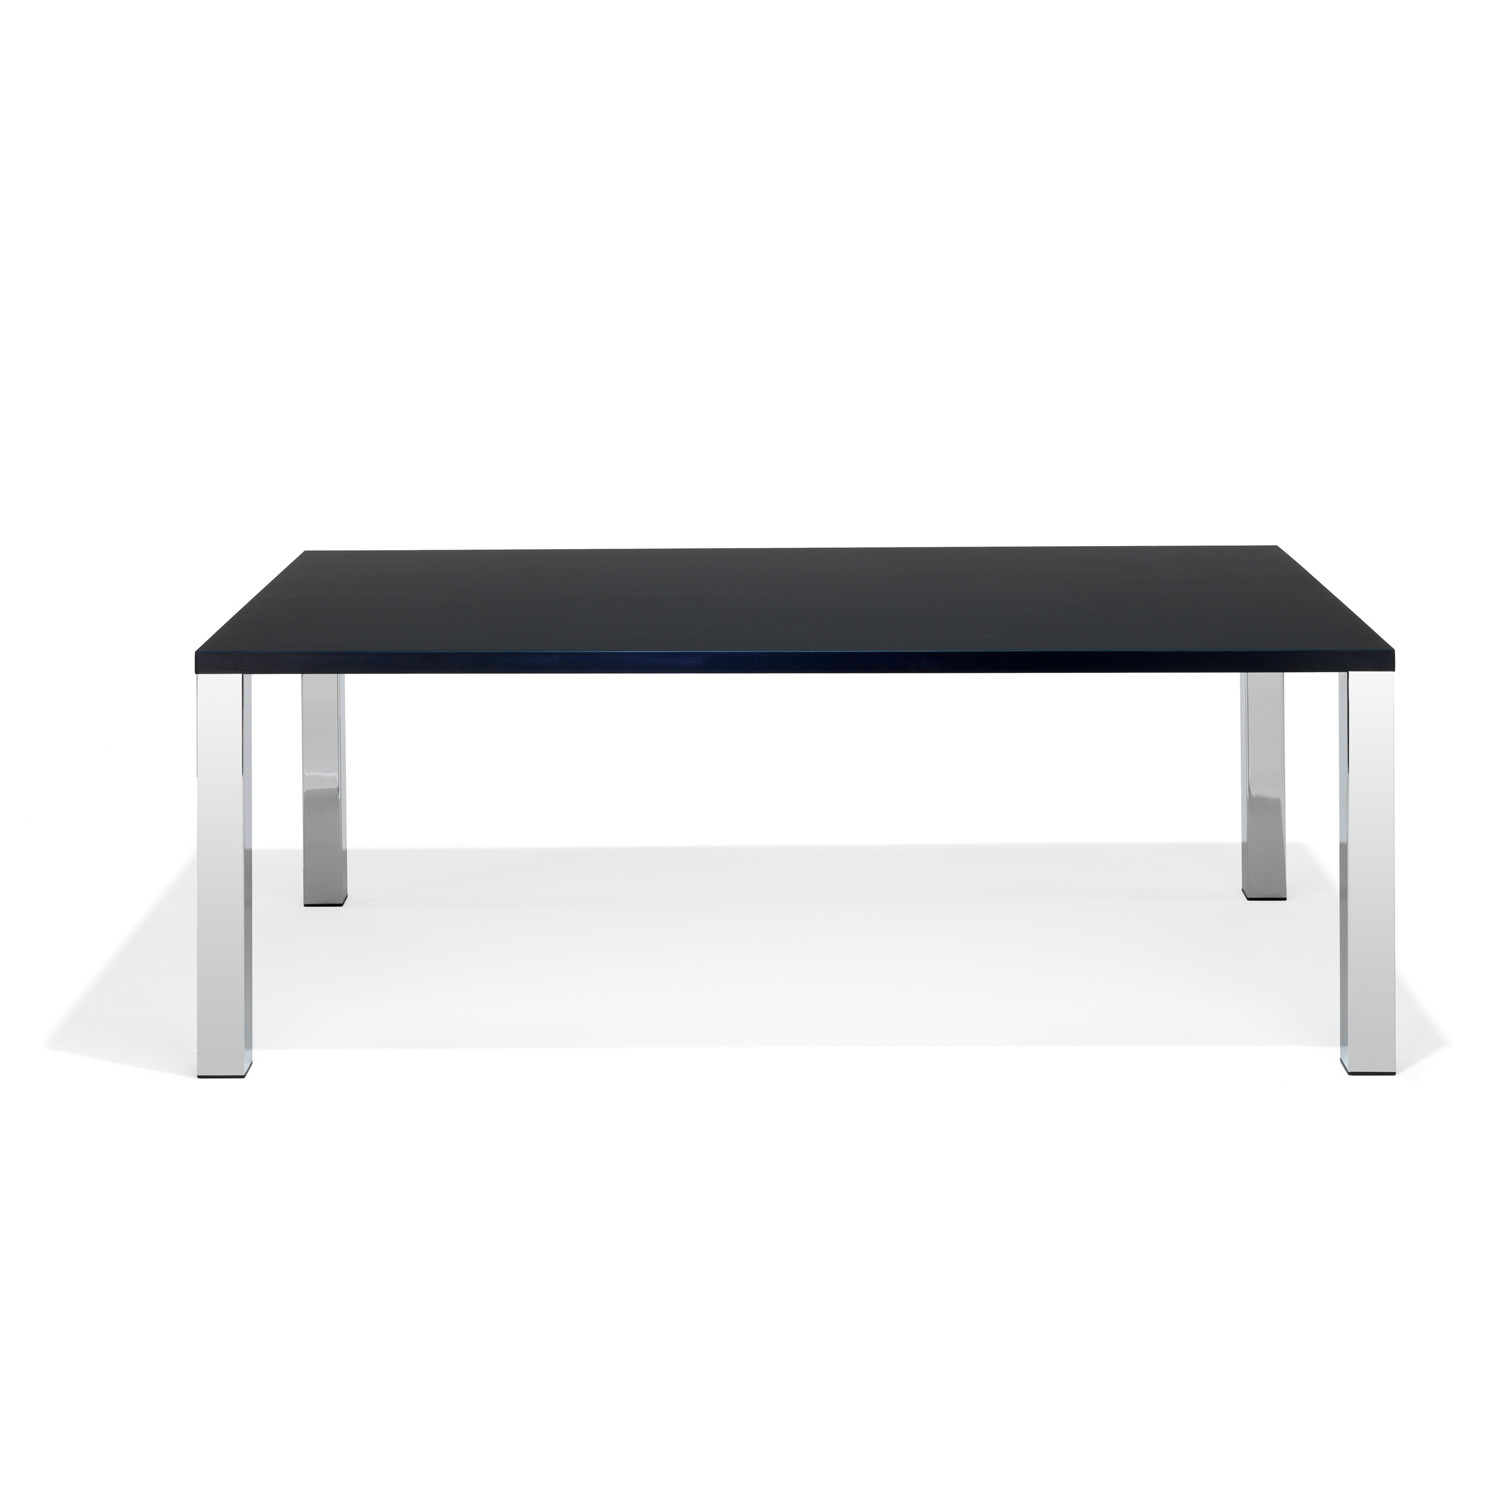 8950 Meeting Table with black top